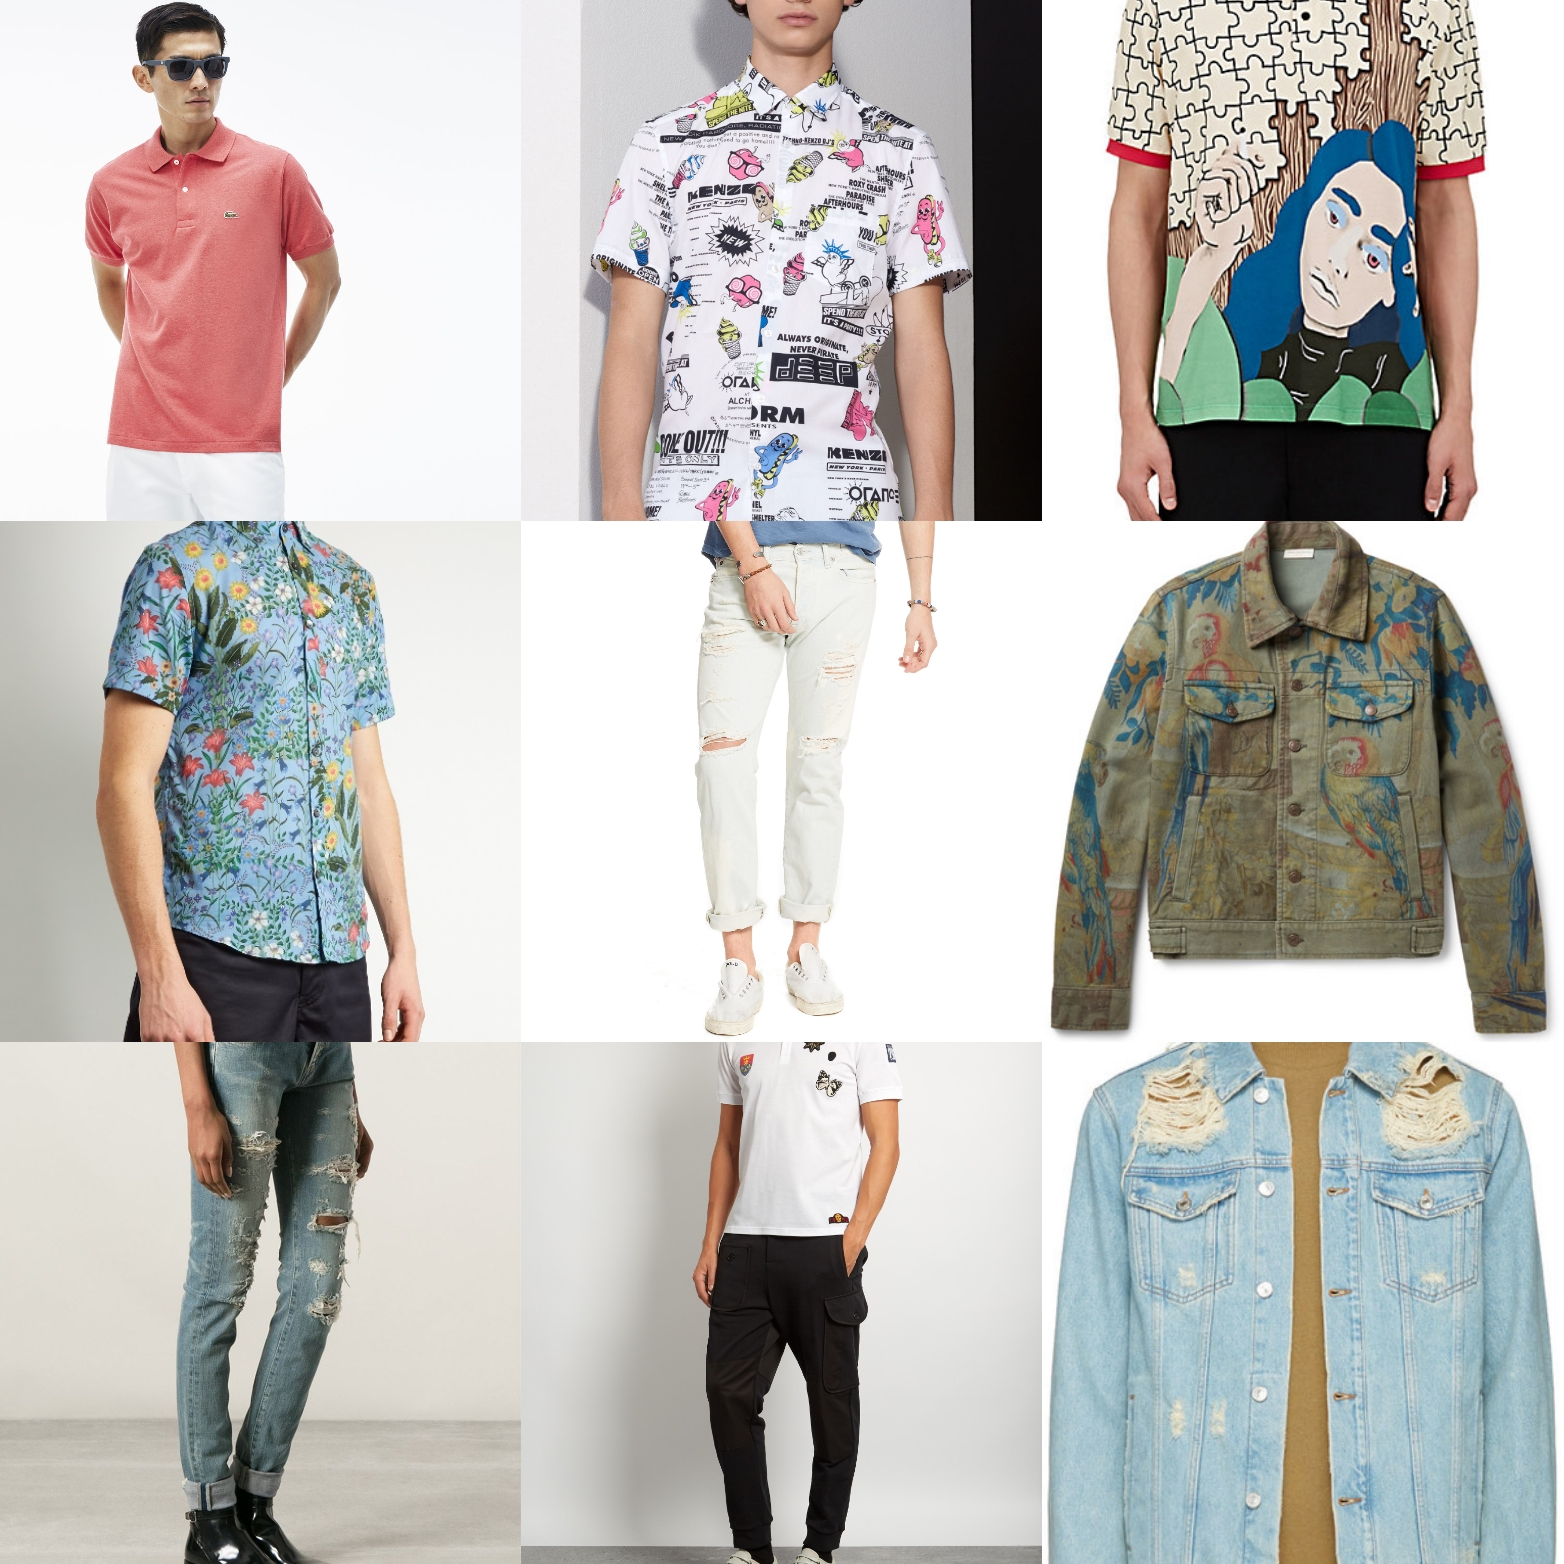 550aa6ebad Men's Clothing Online To Purchase Now For The Spring Season ...